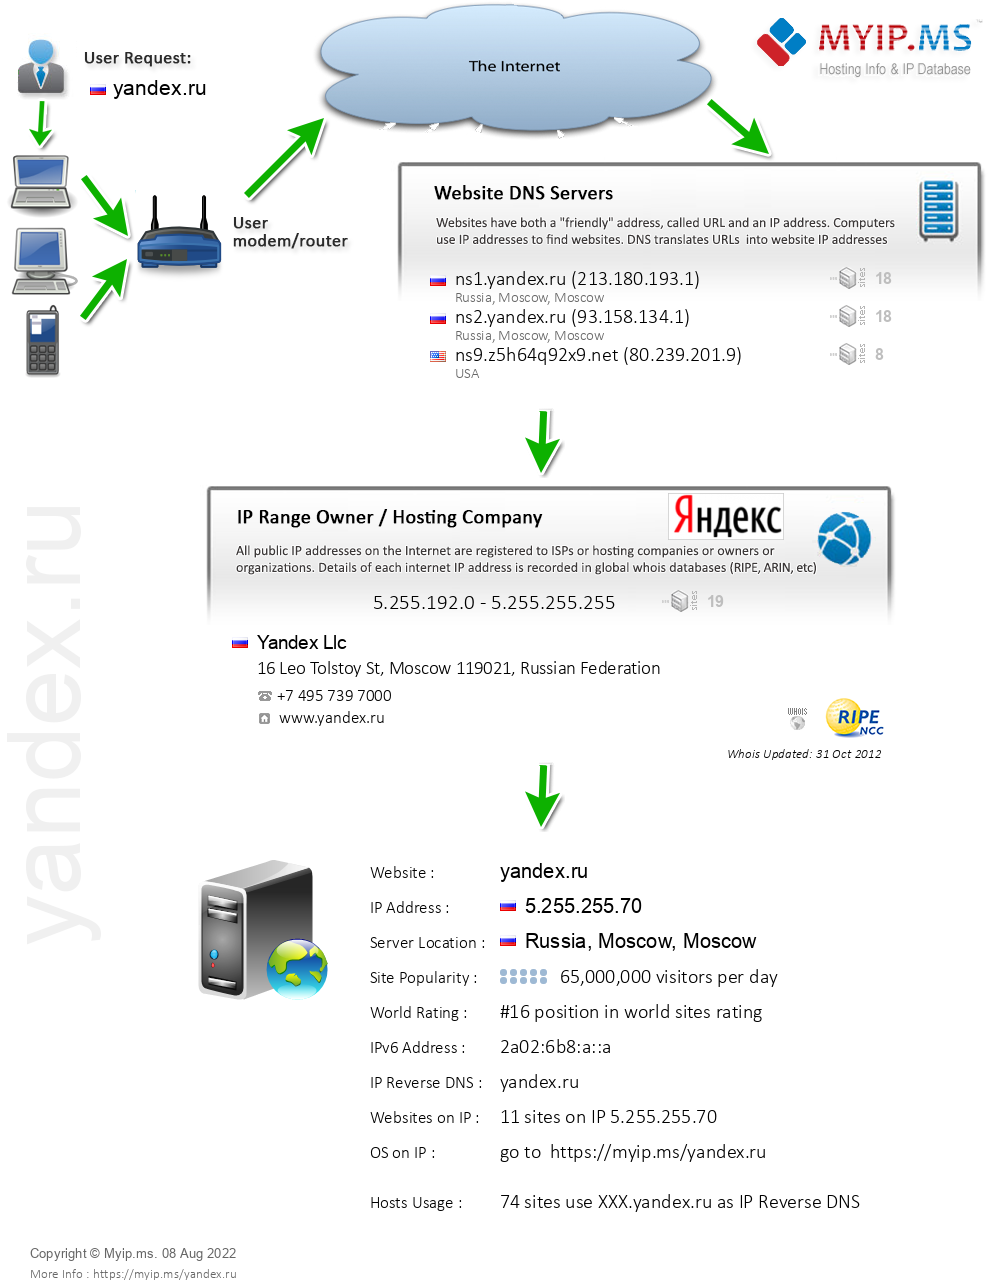 Yandex.ru - Website Hosting Visual IP Diagram